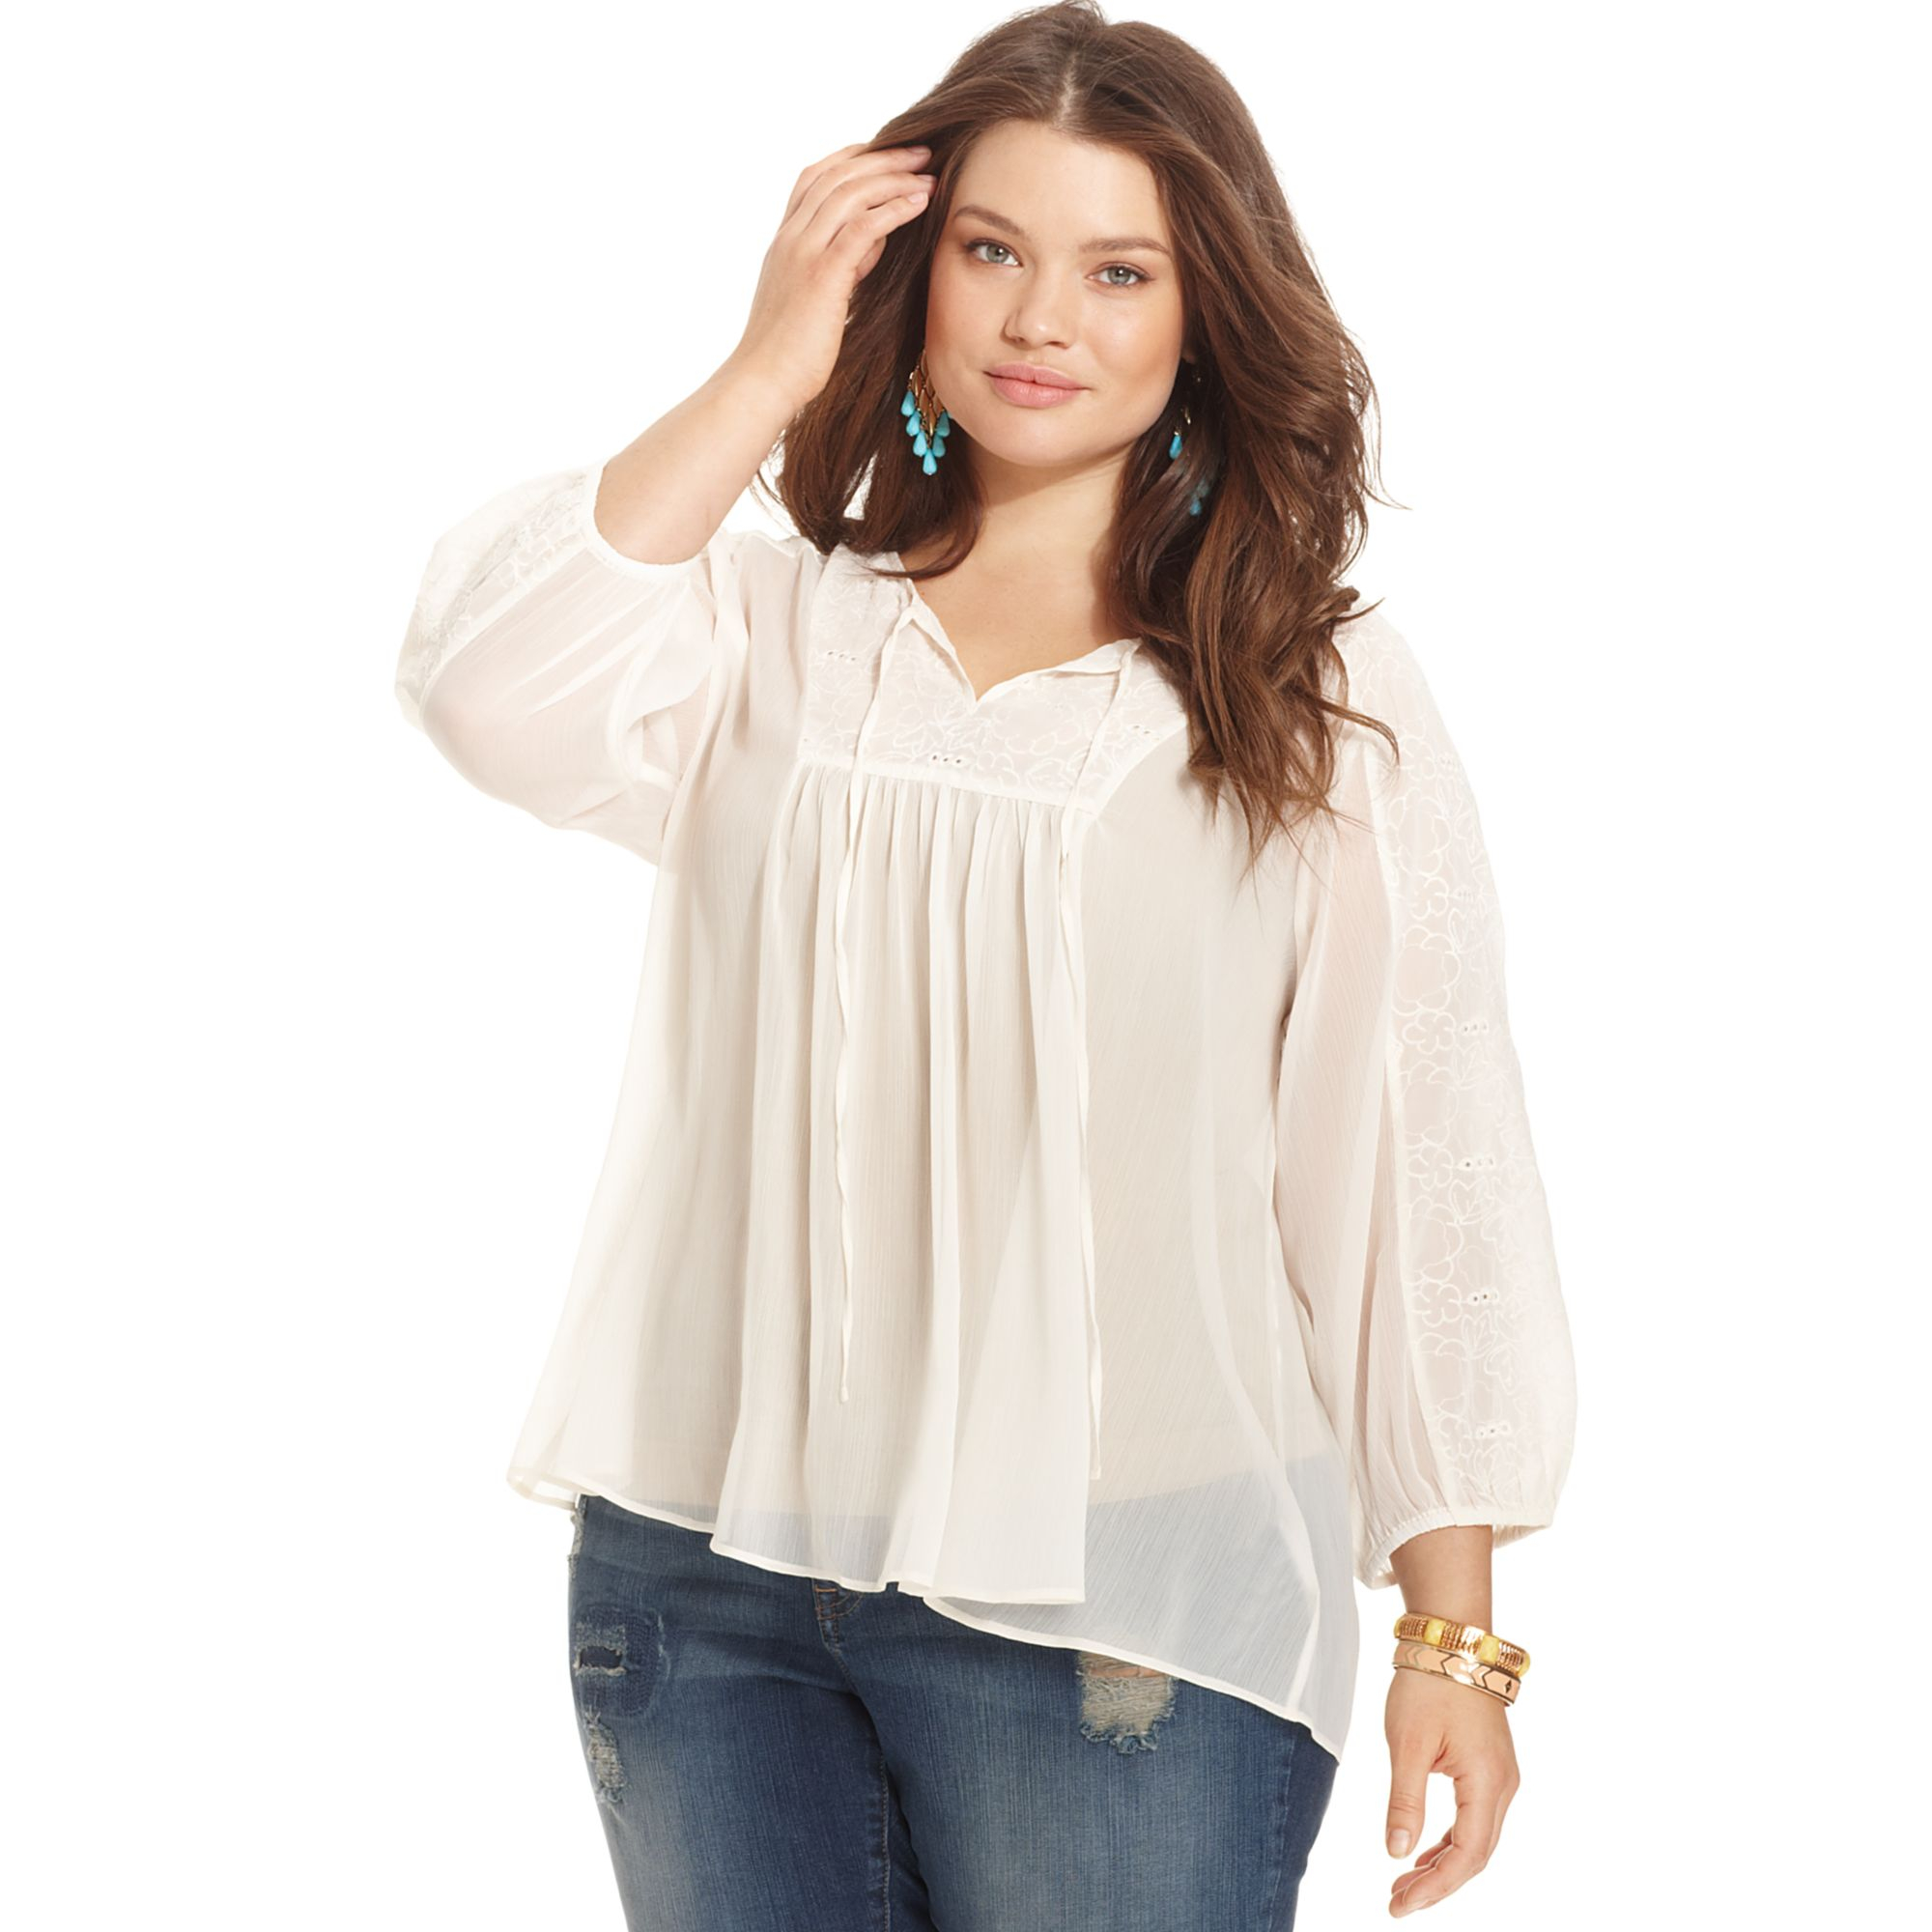 One of the biggest woes of plus size women is finding the right plus size tops and t-shirts to go with their jeans. Being full breasted and curvy makes it a little difficult to find the right top to flatter your figure and put together an outfit that will make you look sexy rather than gaudy.